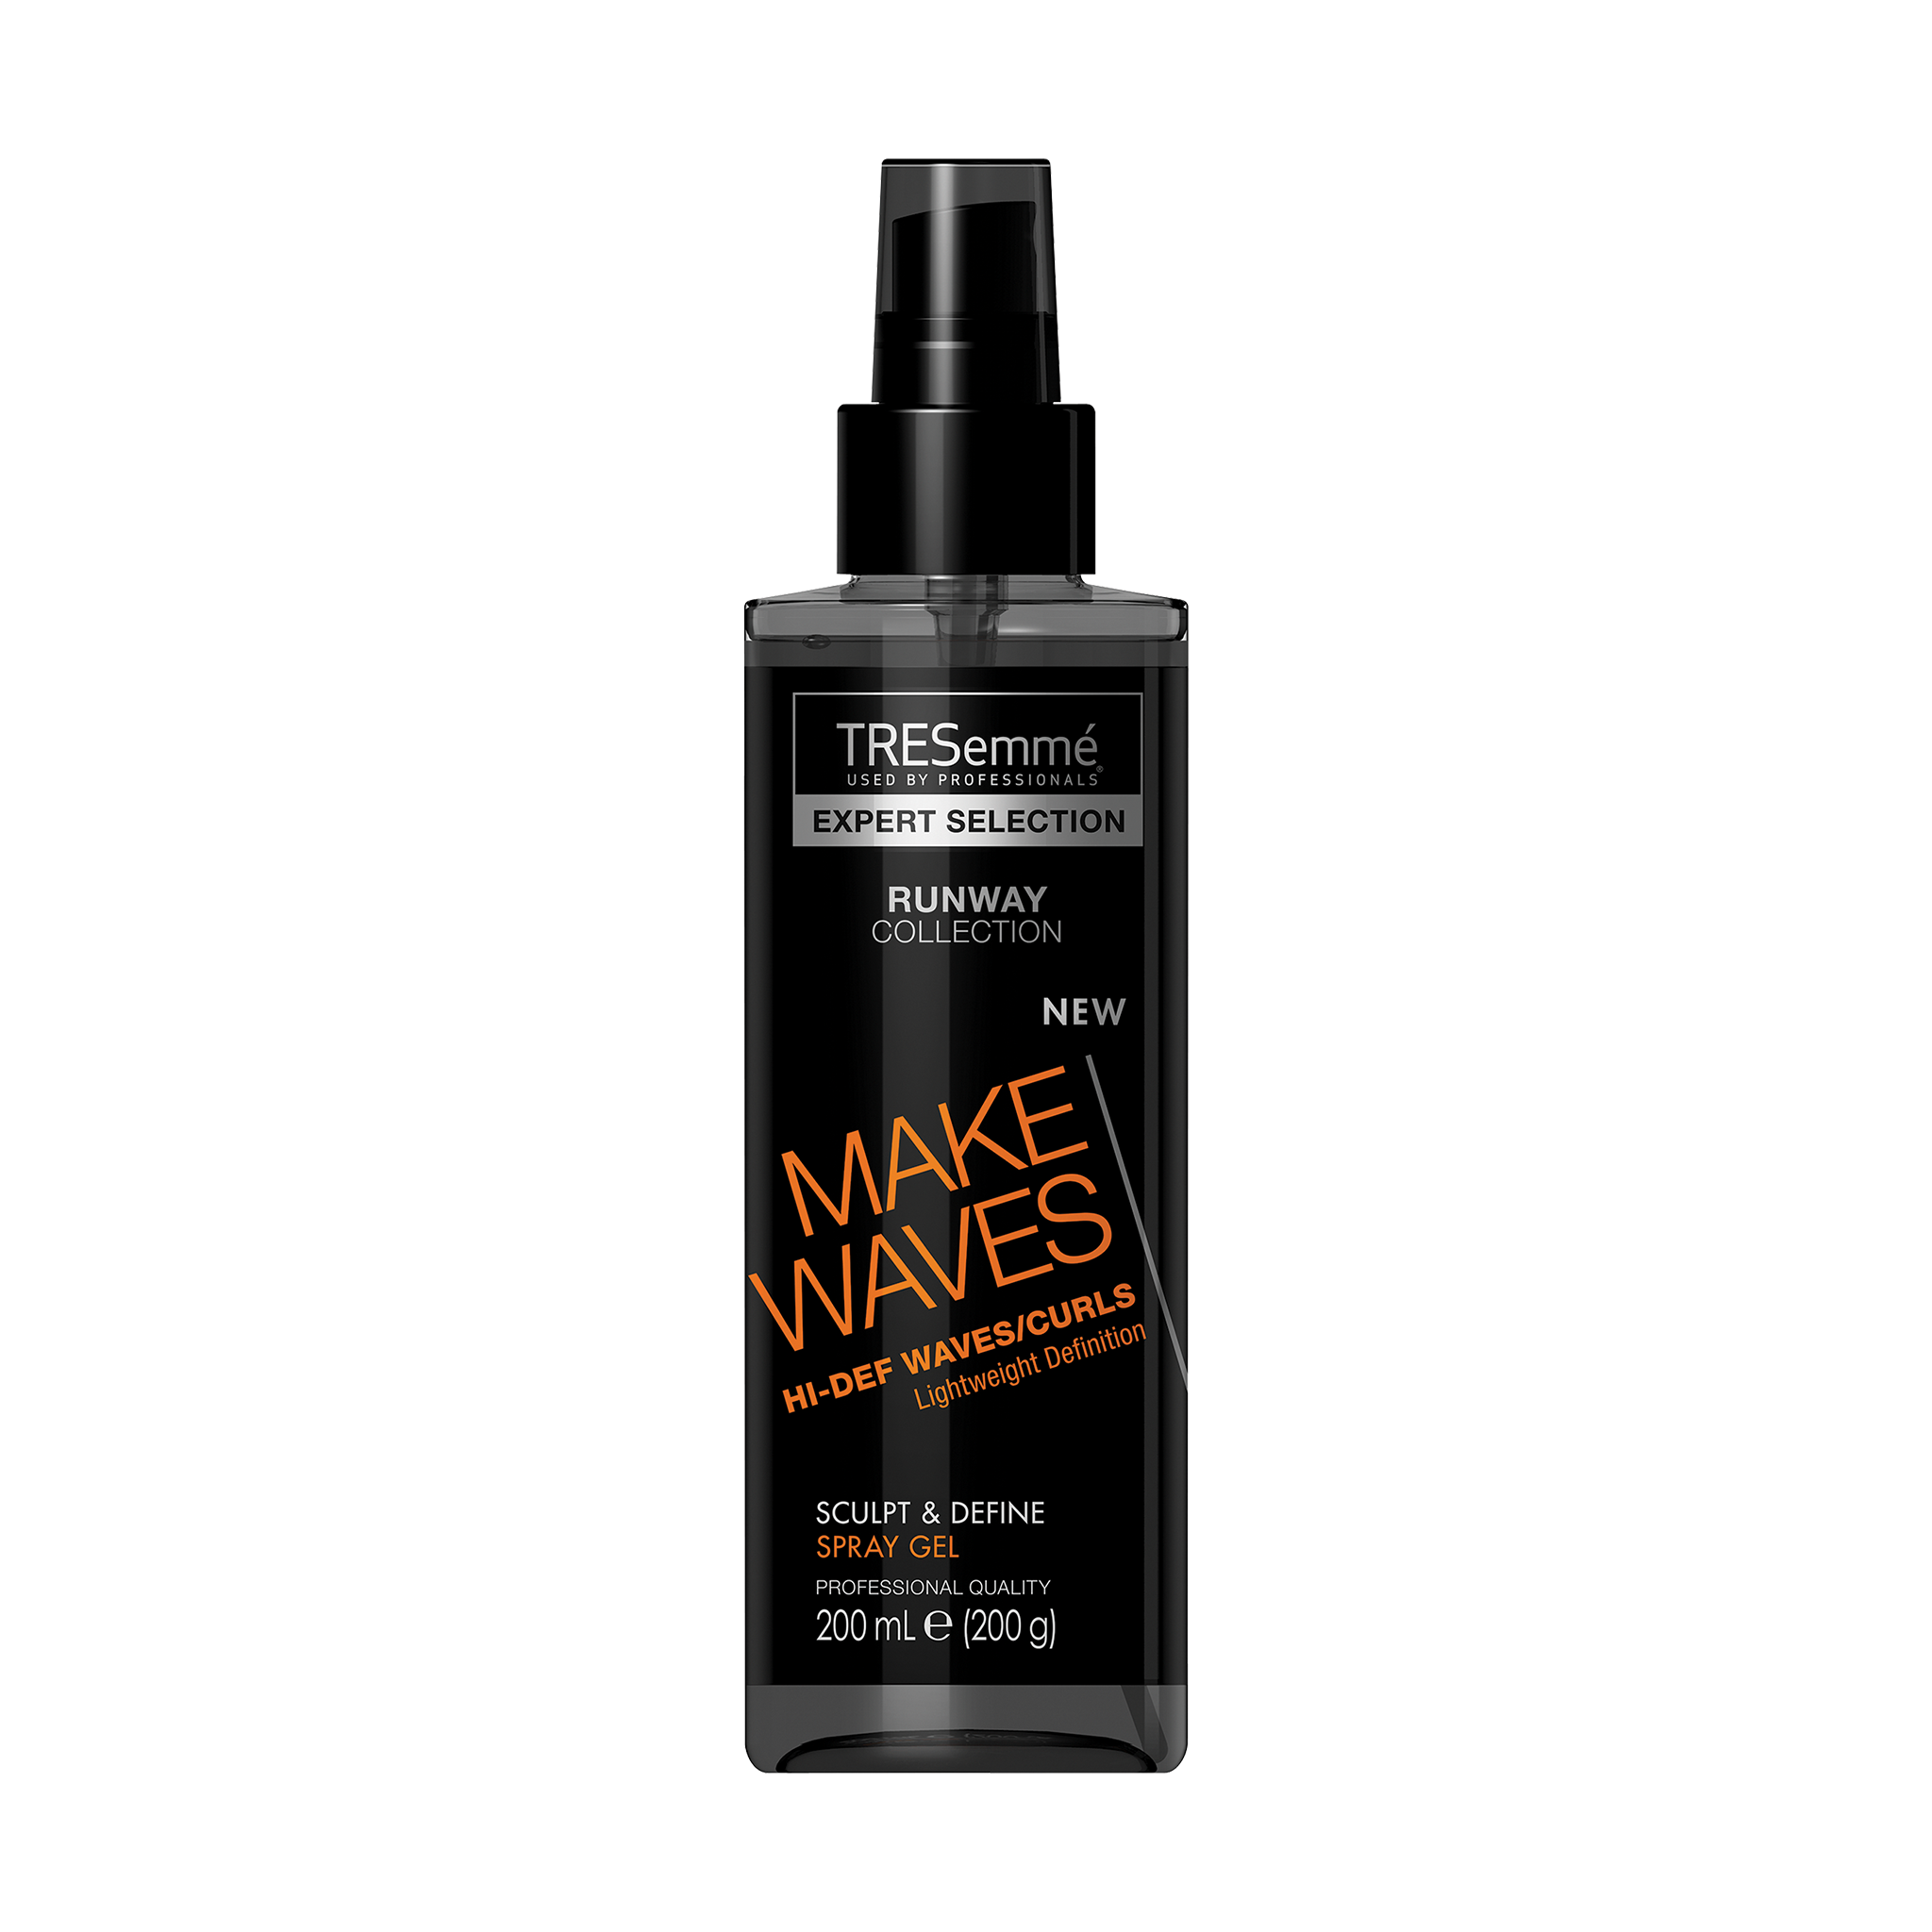 Tresemmé Make Waves Sculpt Define Spray Gel